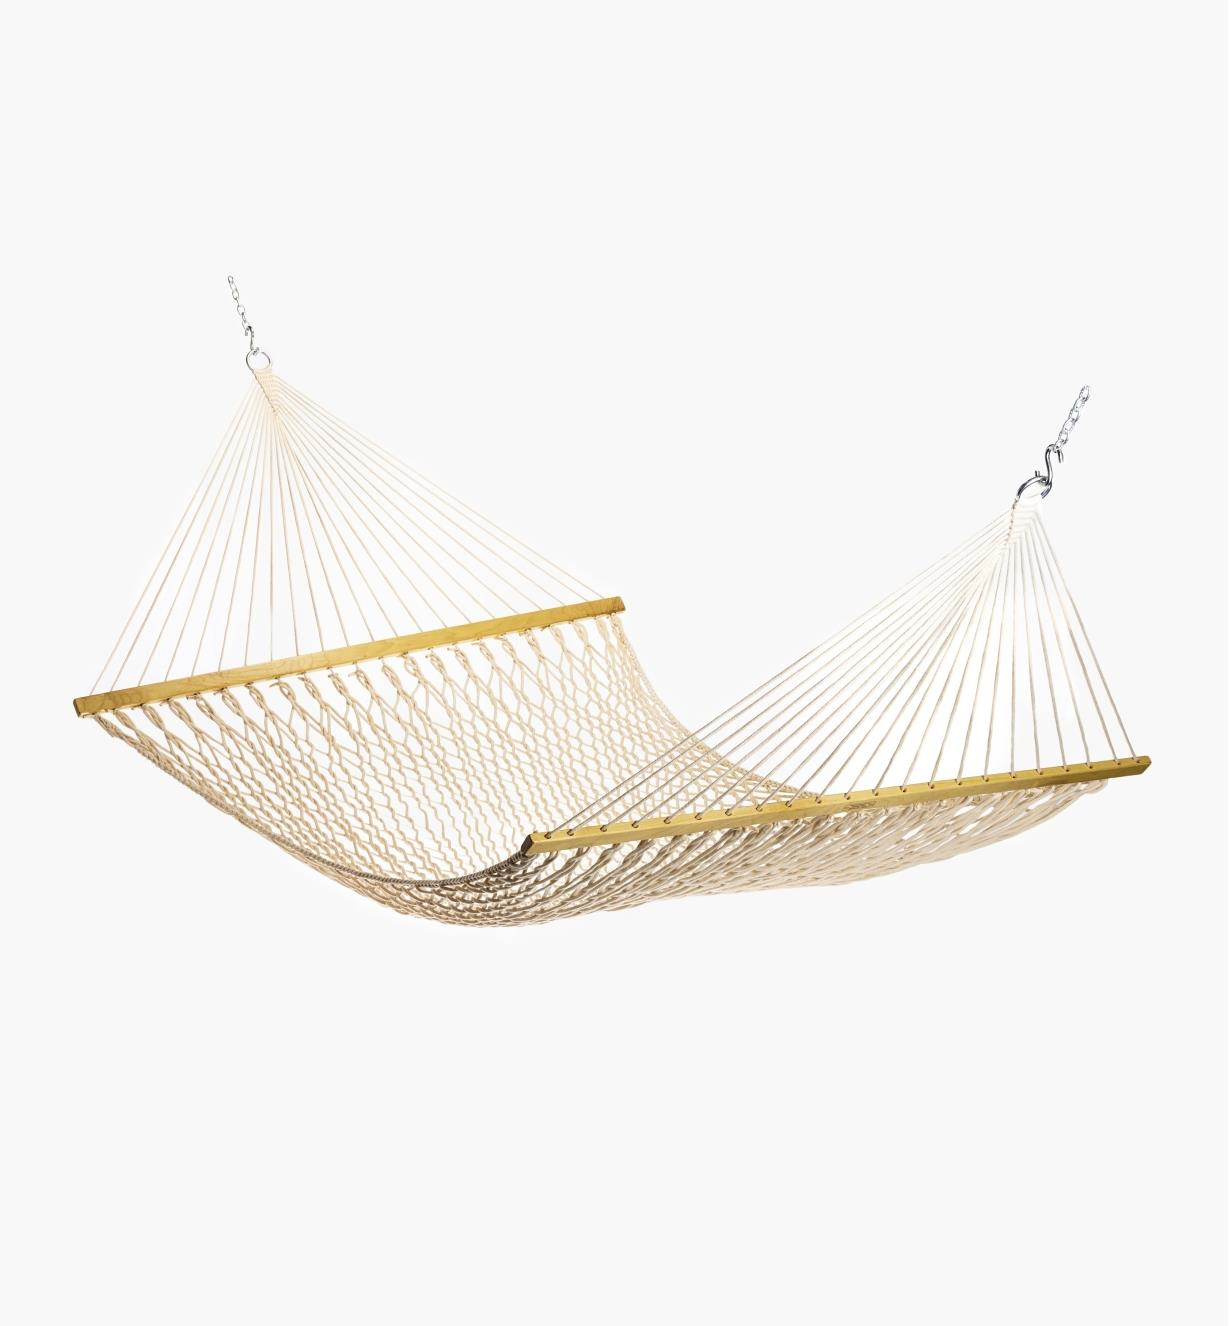 XK209 - Polyester Hammock only, Beige